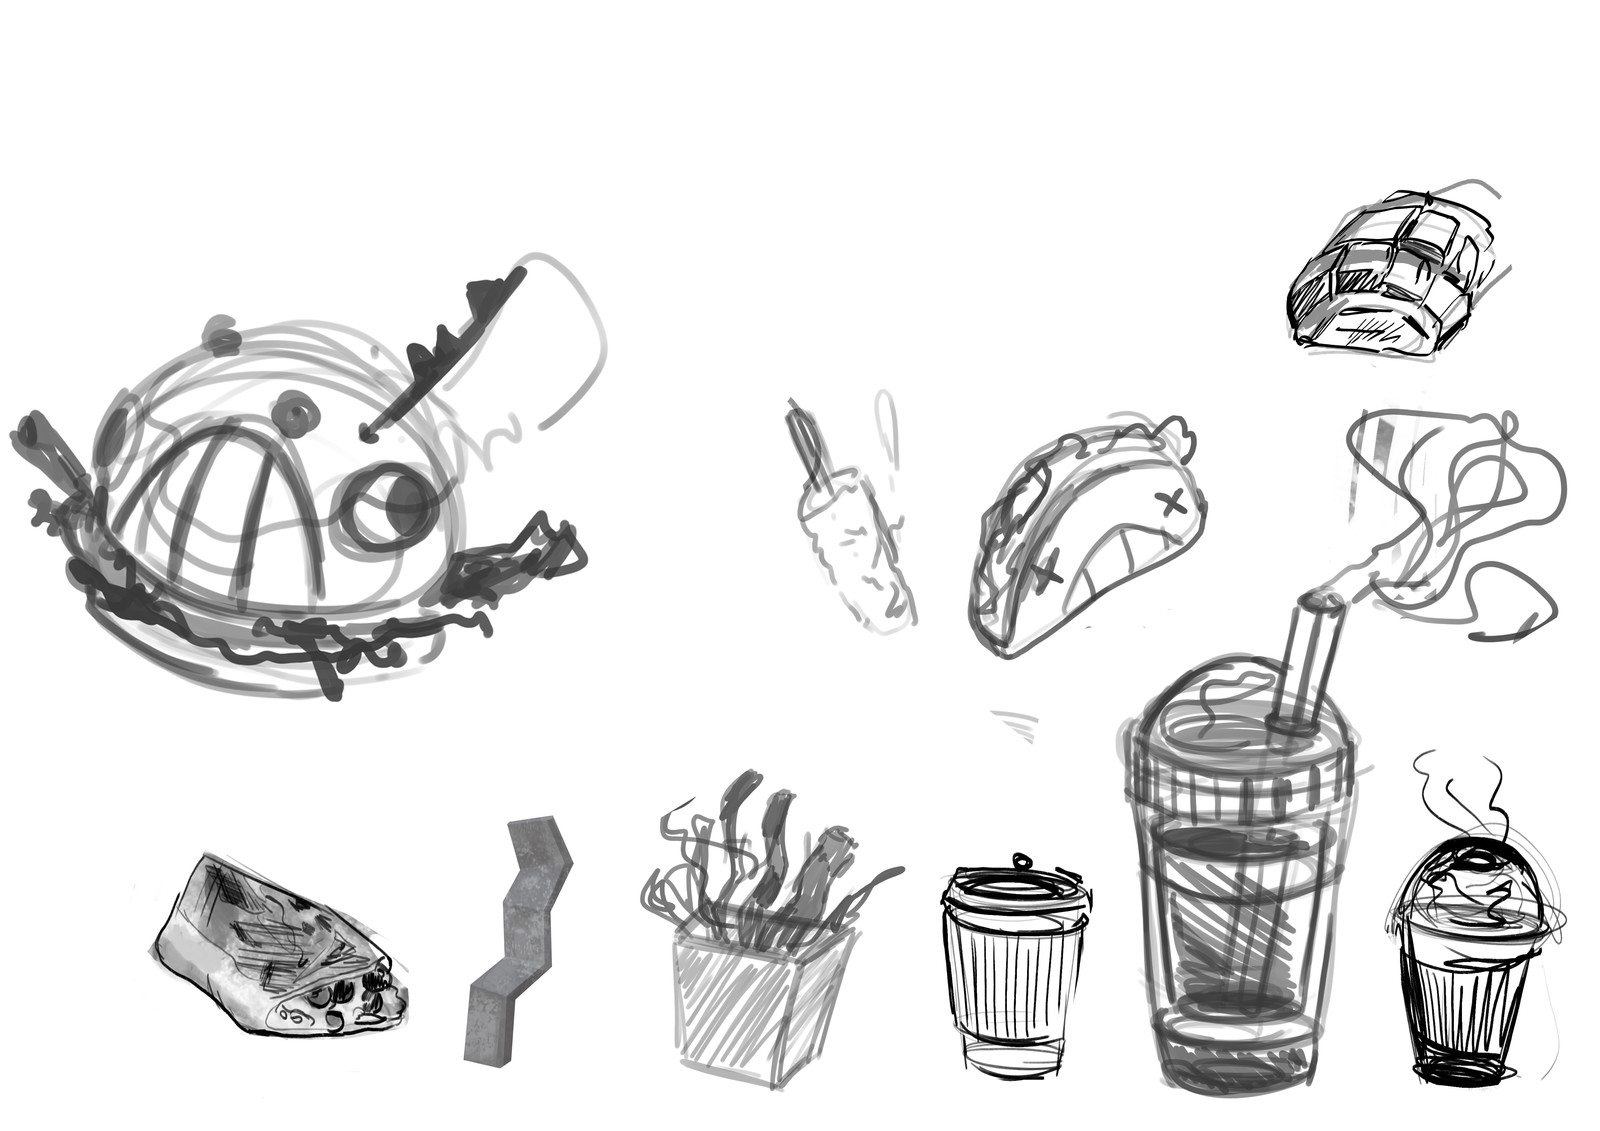 Little research sketches